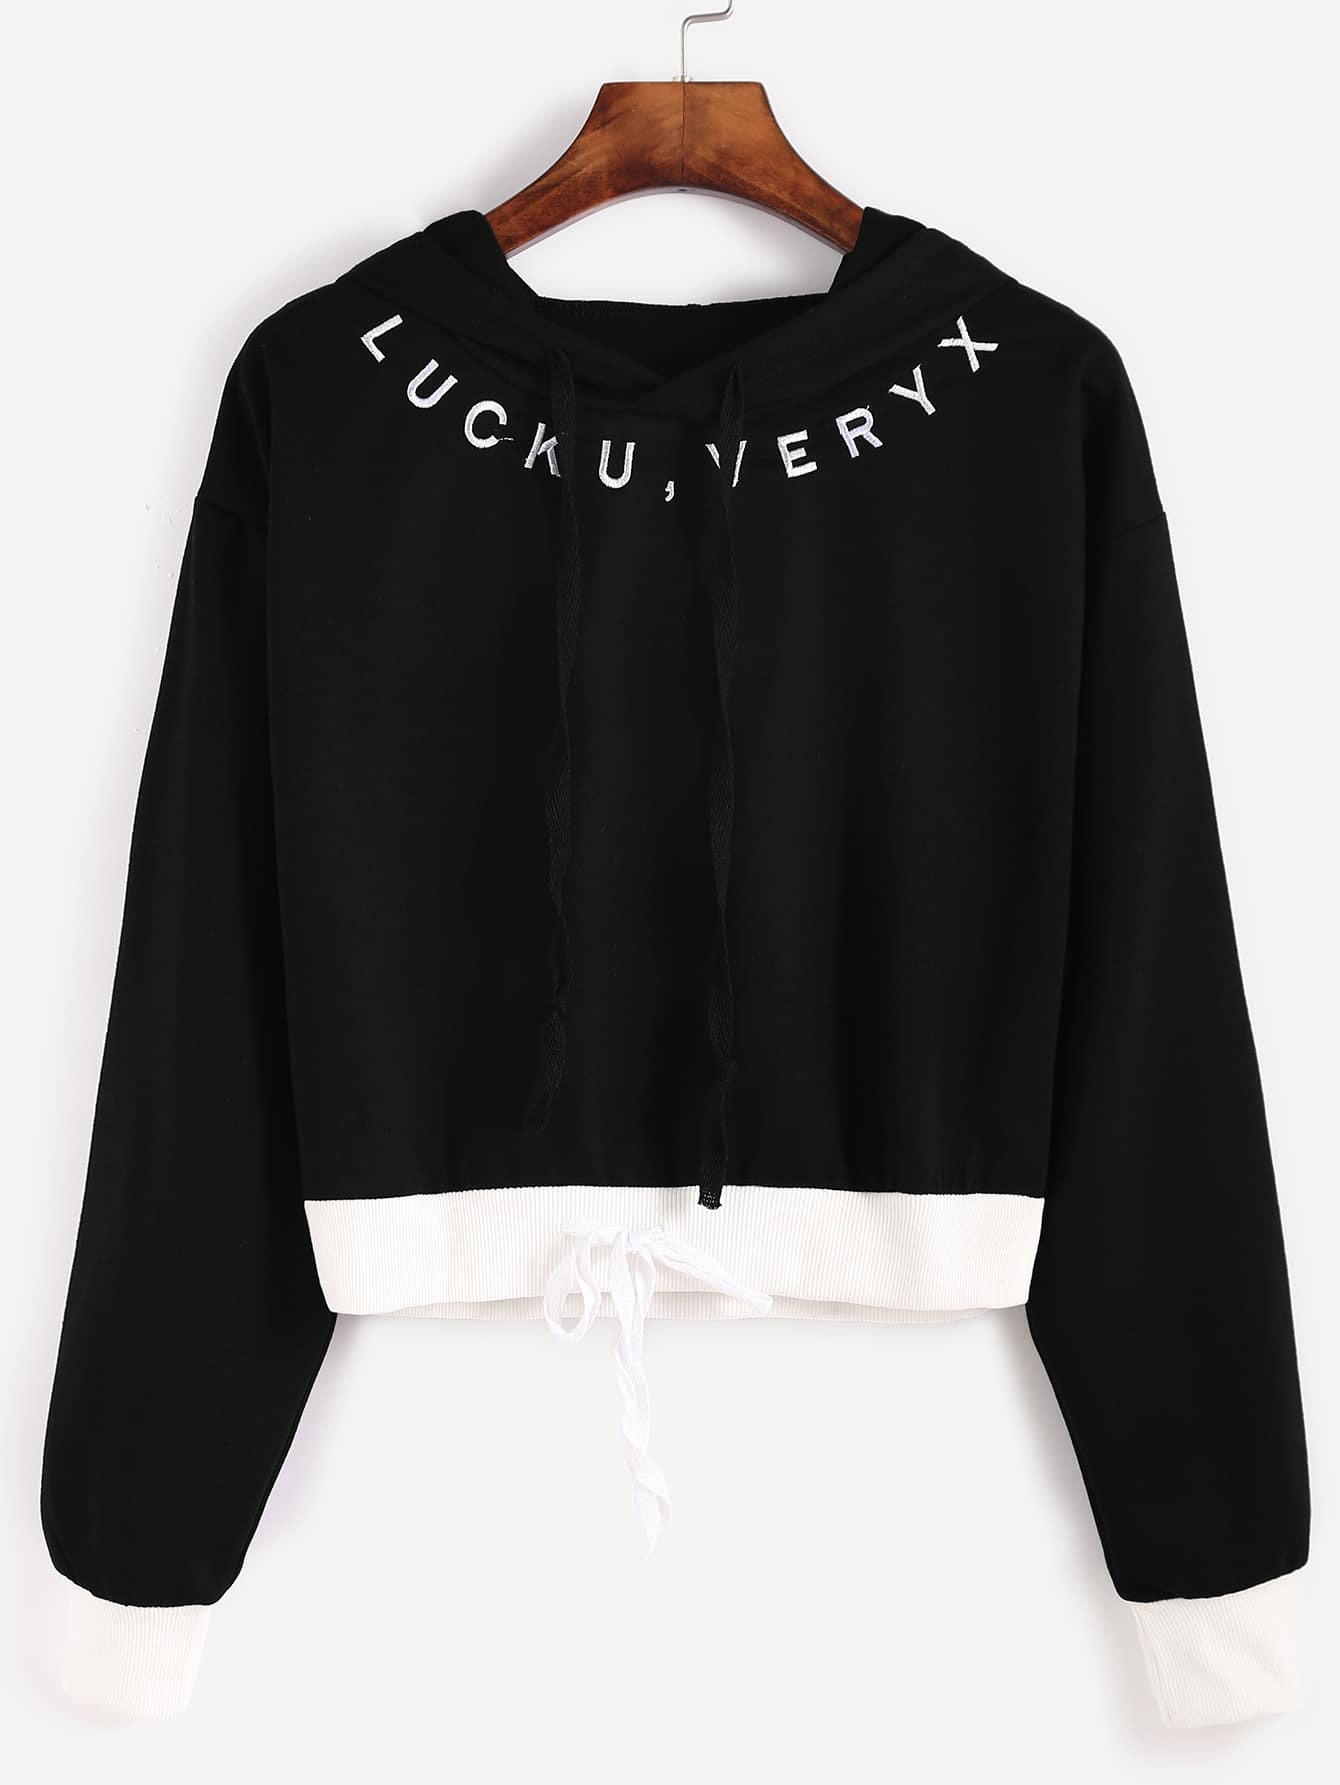 Contrast Trim Letter Embroidery Drawstring Hooded Crop Sweatshirt